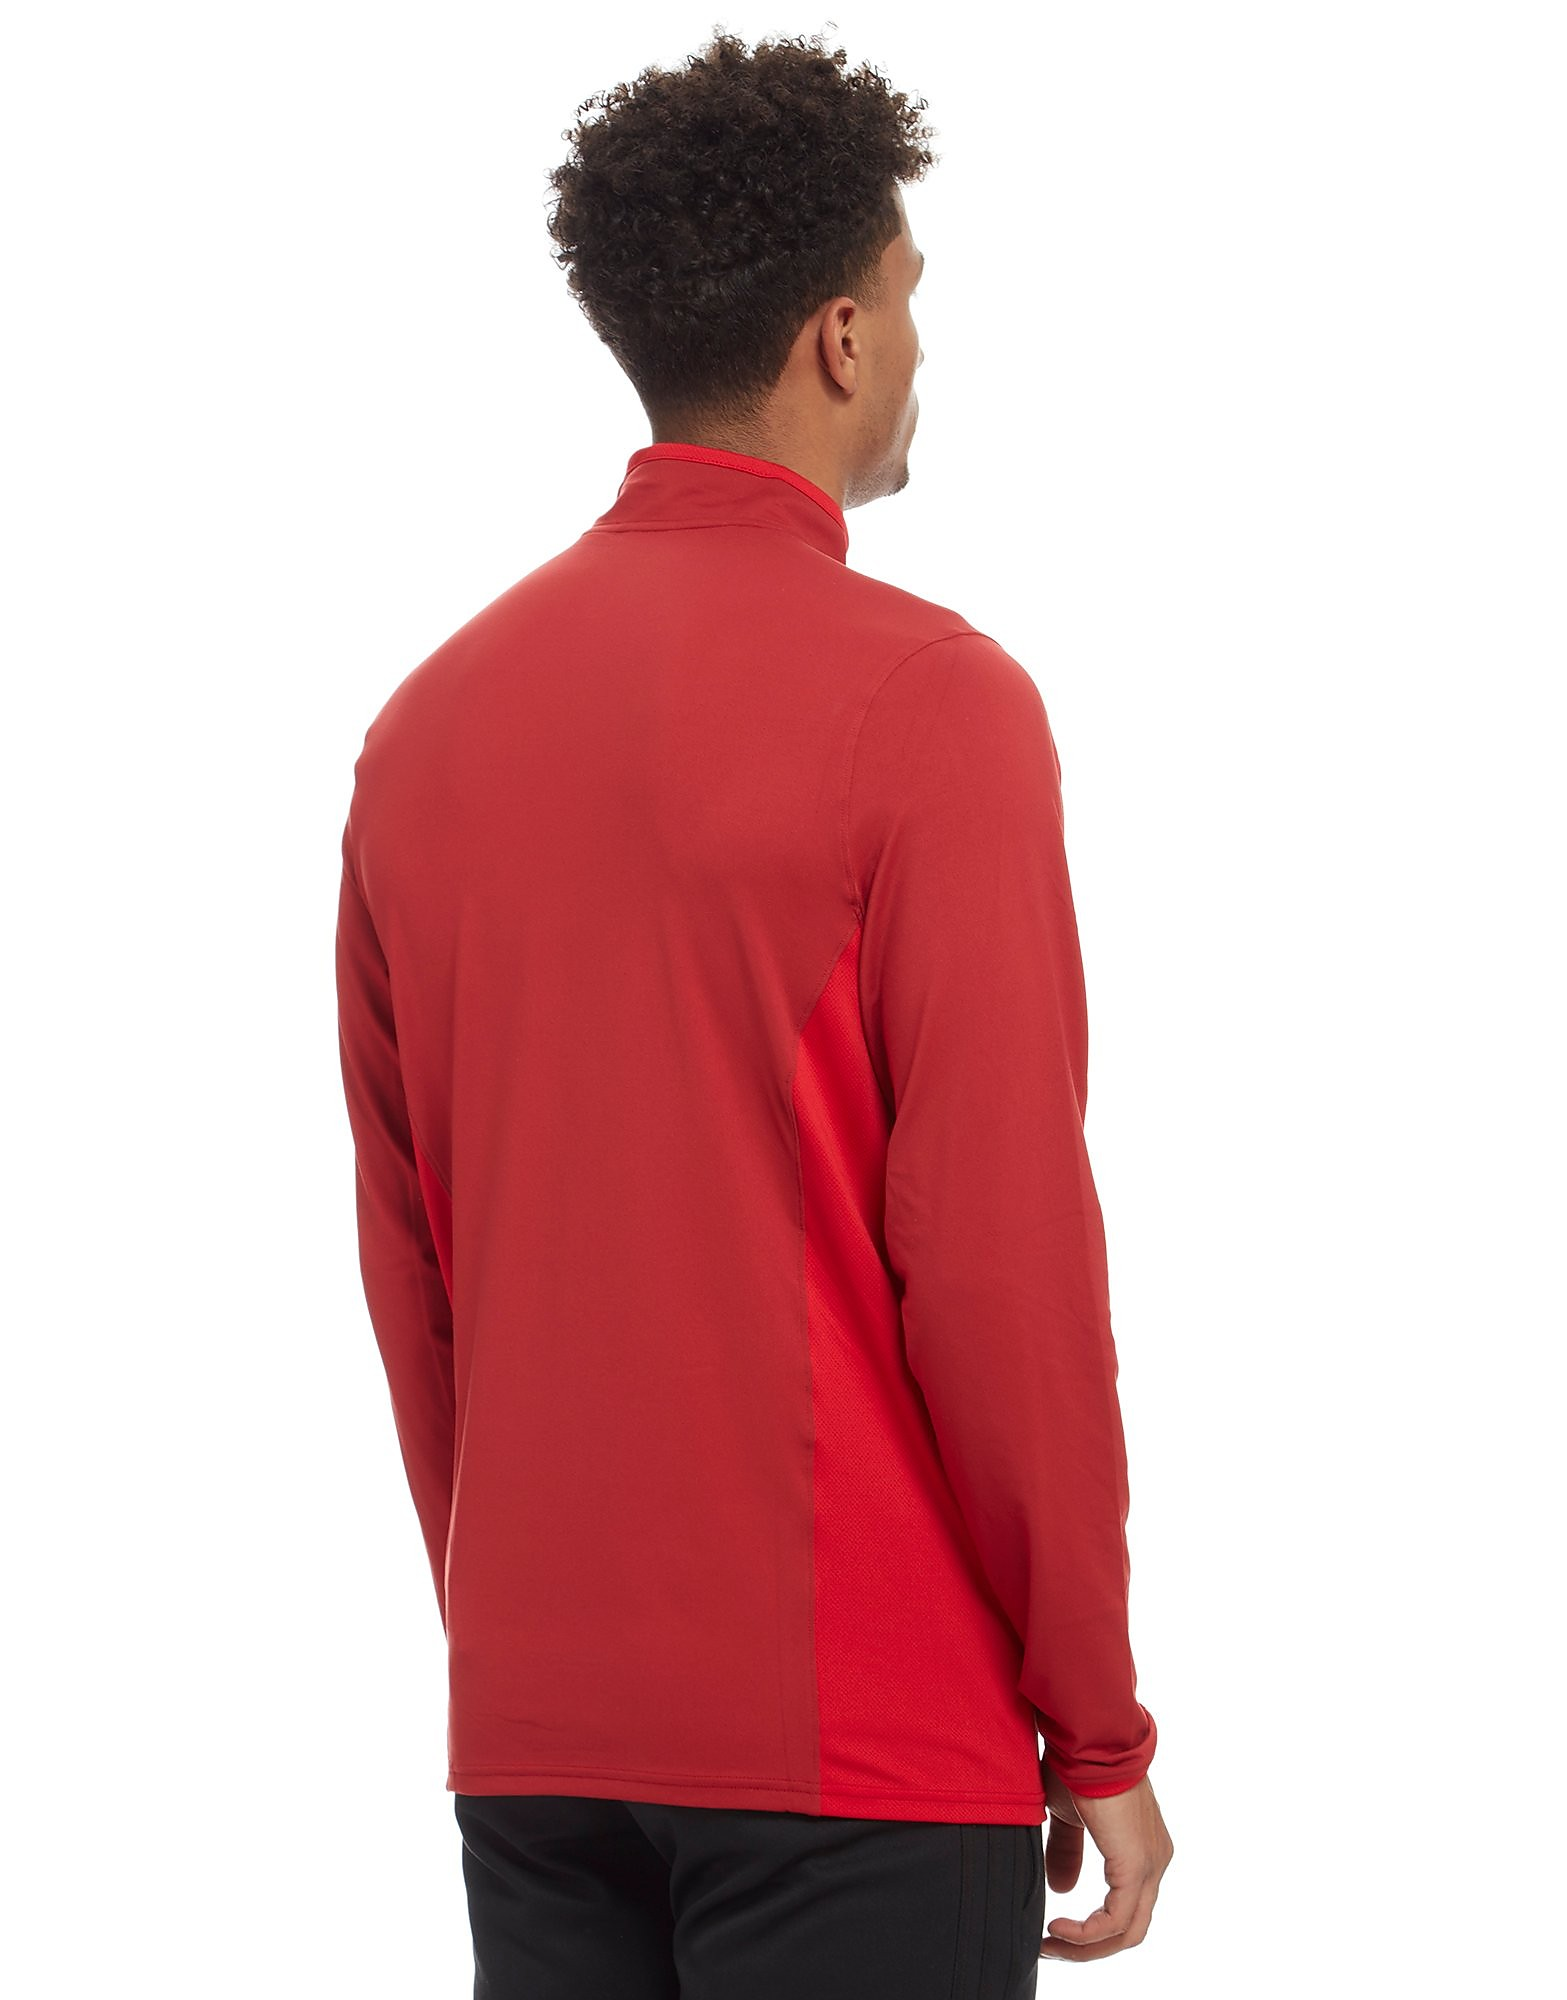 Under Armour Wales RU 1/4 RV Top